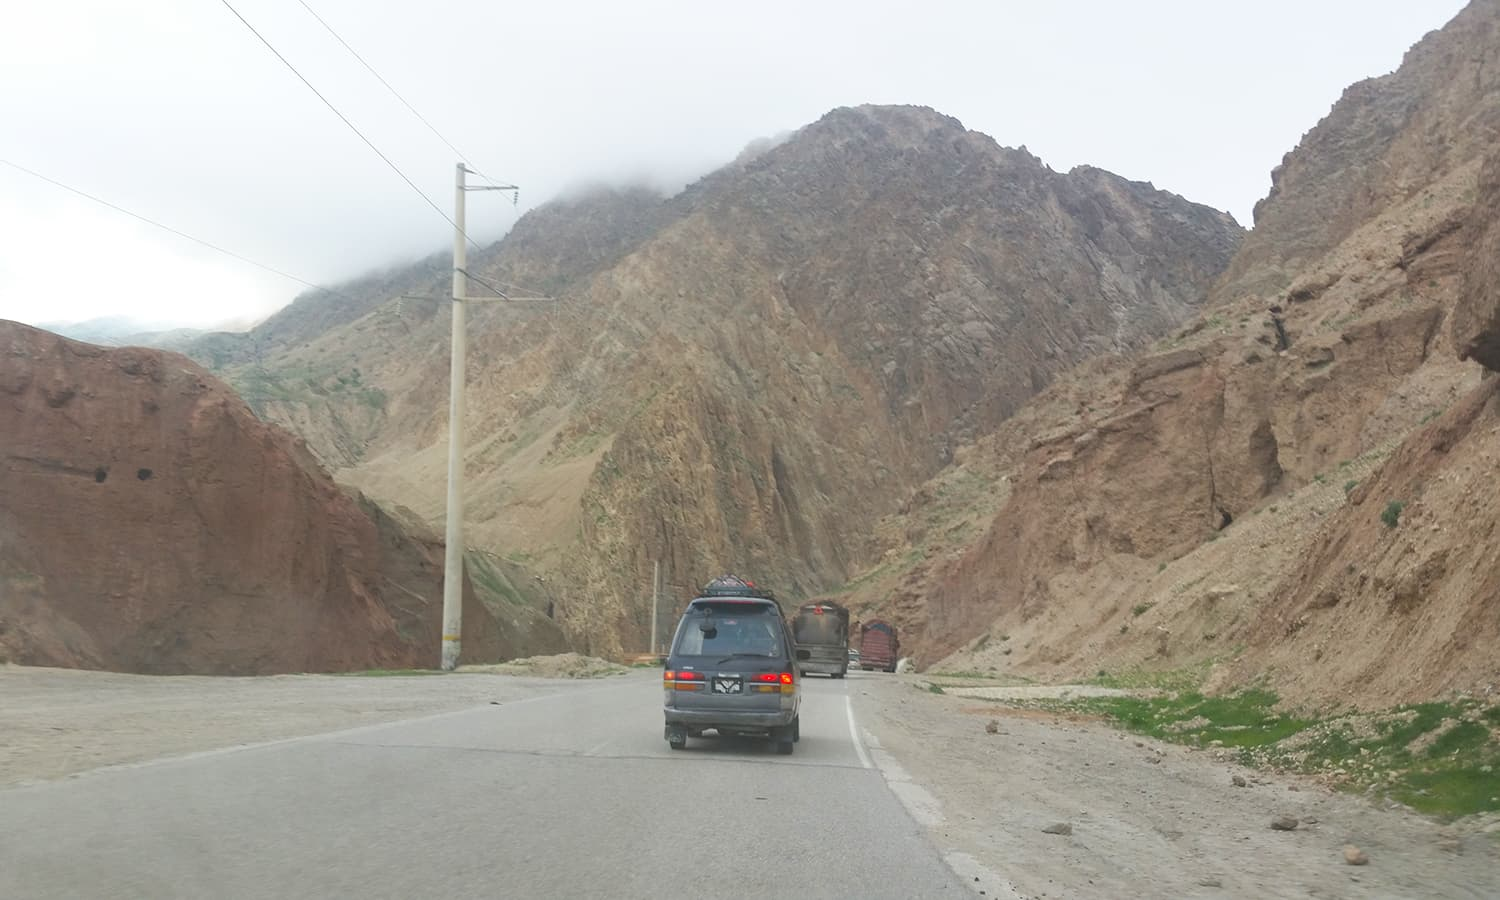 Road to Mazar-e-Sharif.